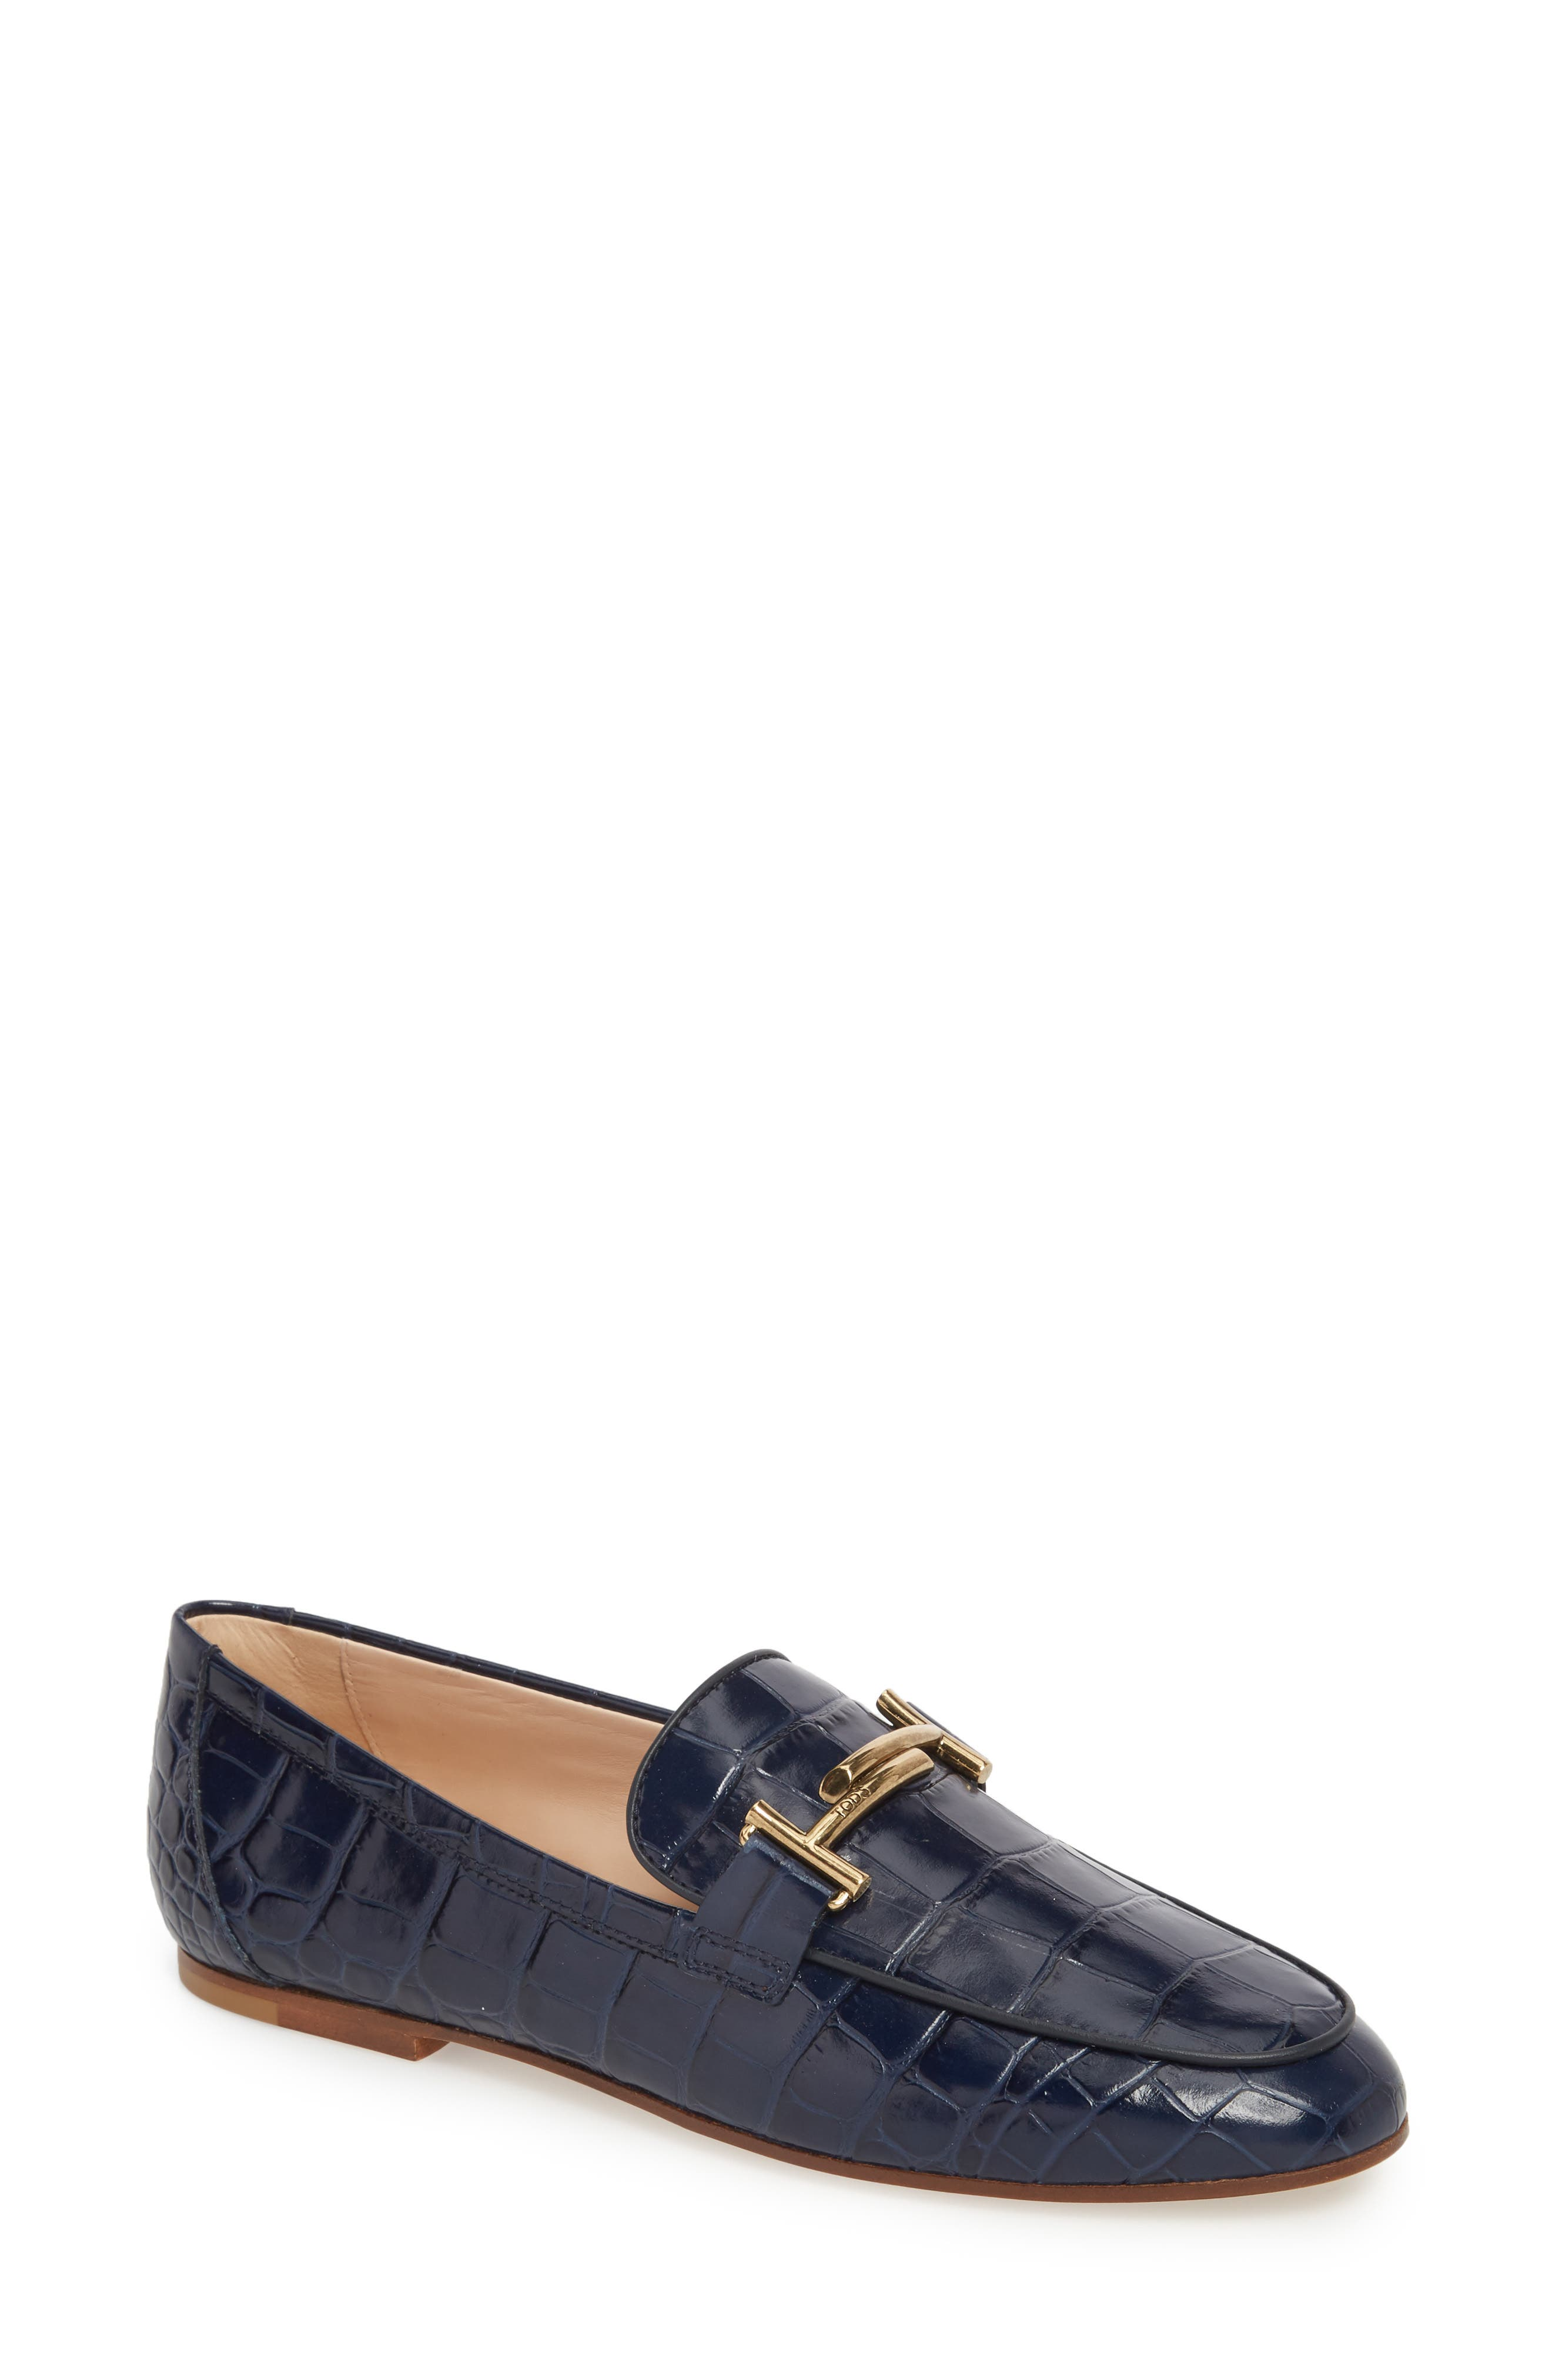 Double-T Printed Loafer in Dark Navy